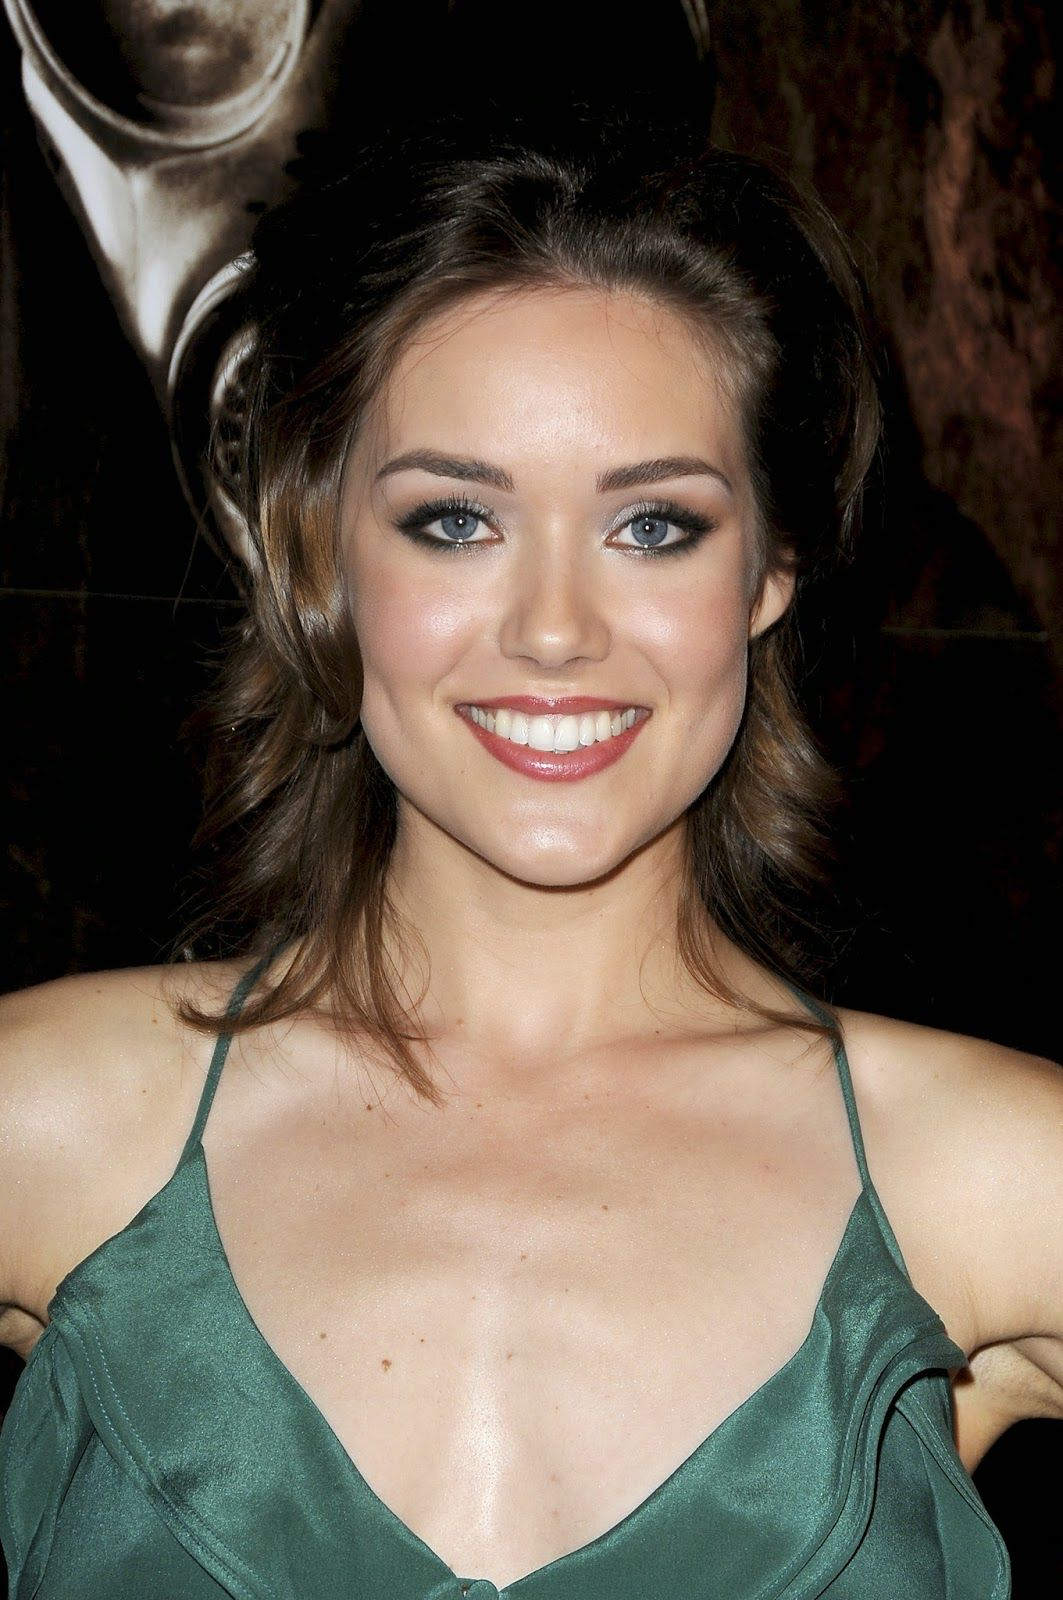 Hacked Megan Boone nudes (38 photos), Sexy, Fappening, Selfie, legs 2018